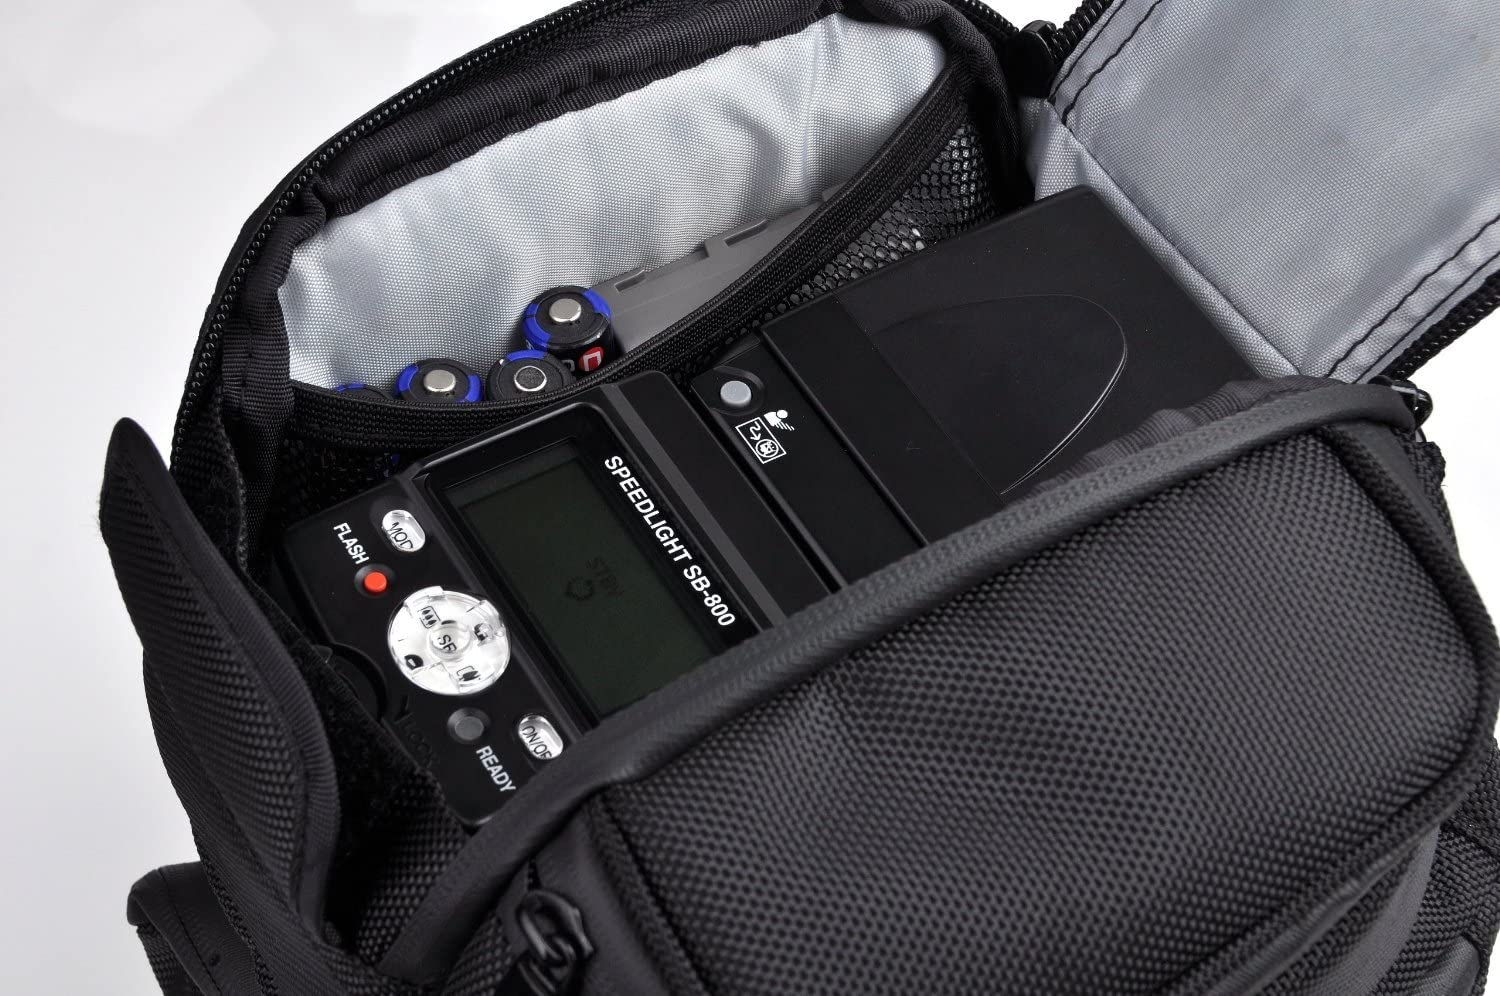 Sling Backpack Camera Case with Friend Travel Tripod for Canon EOS 1300D 1200D 760D 750D 700D 100D 30D